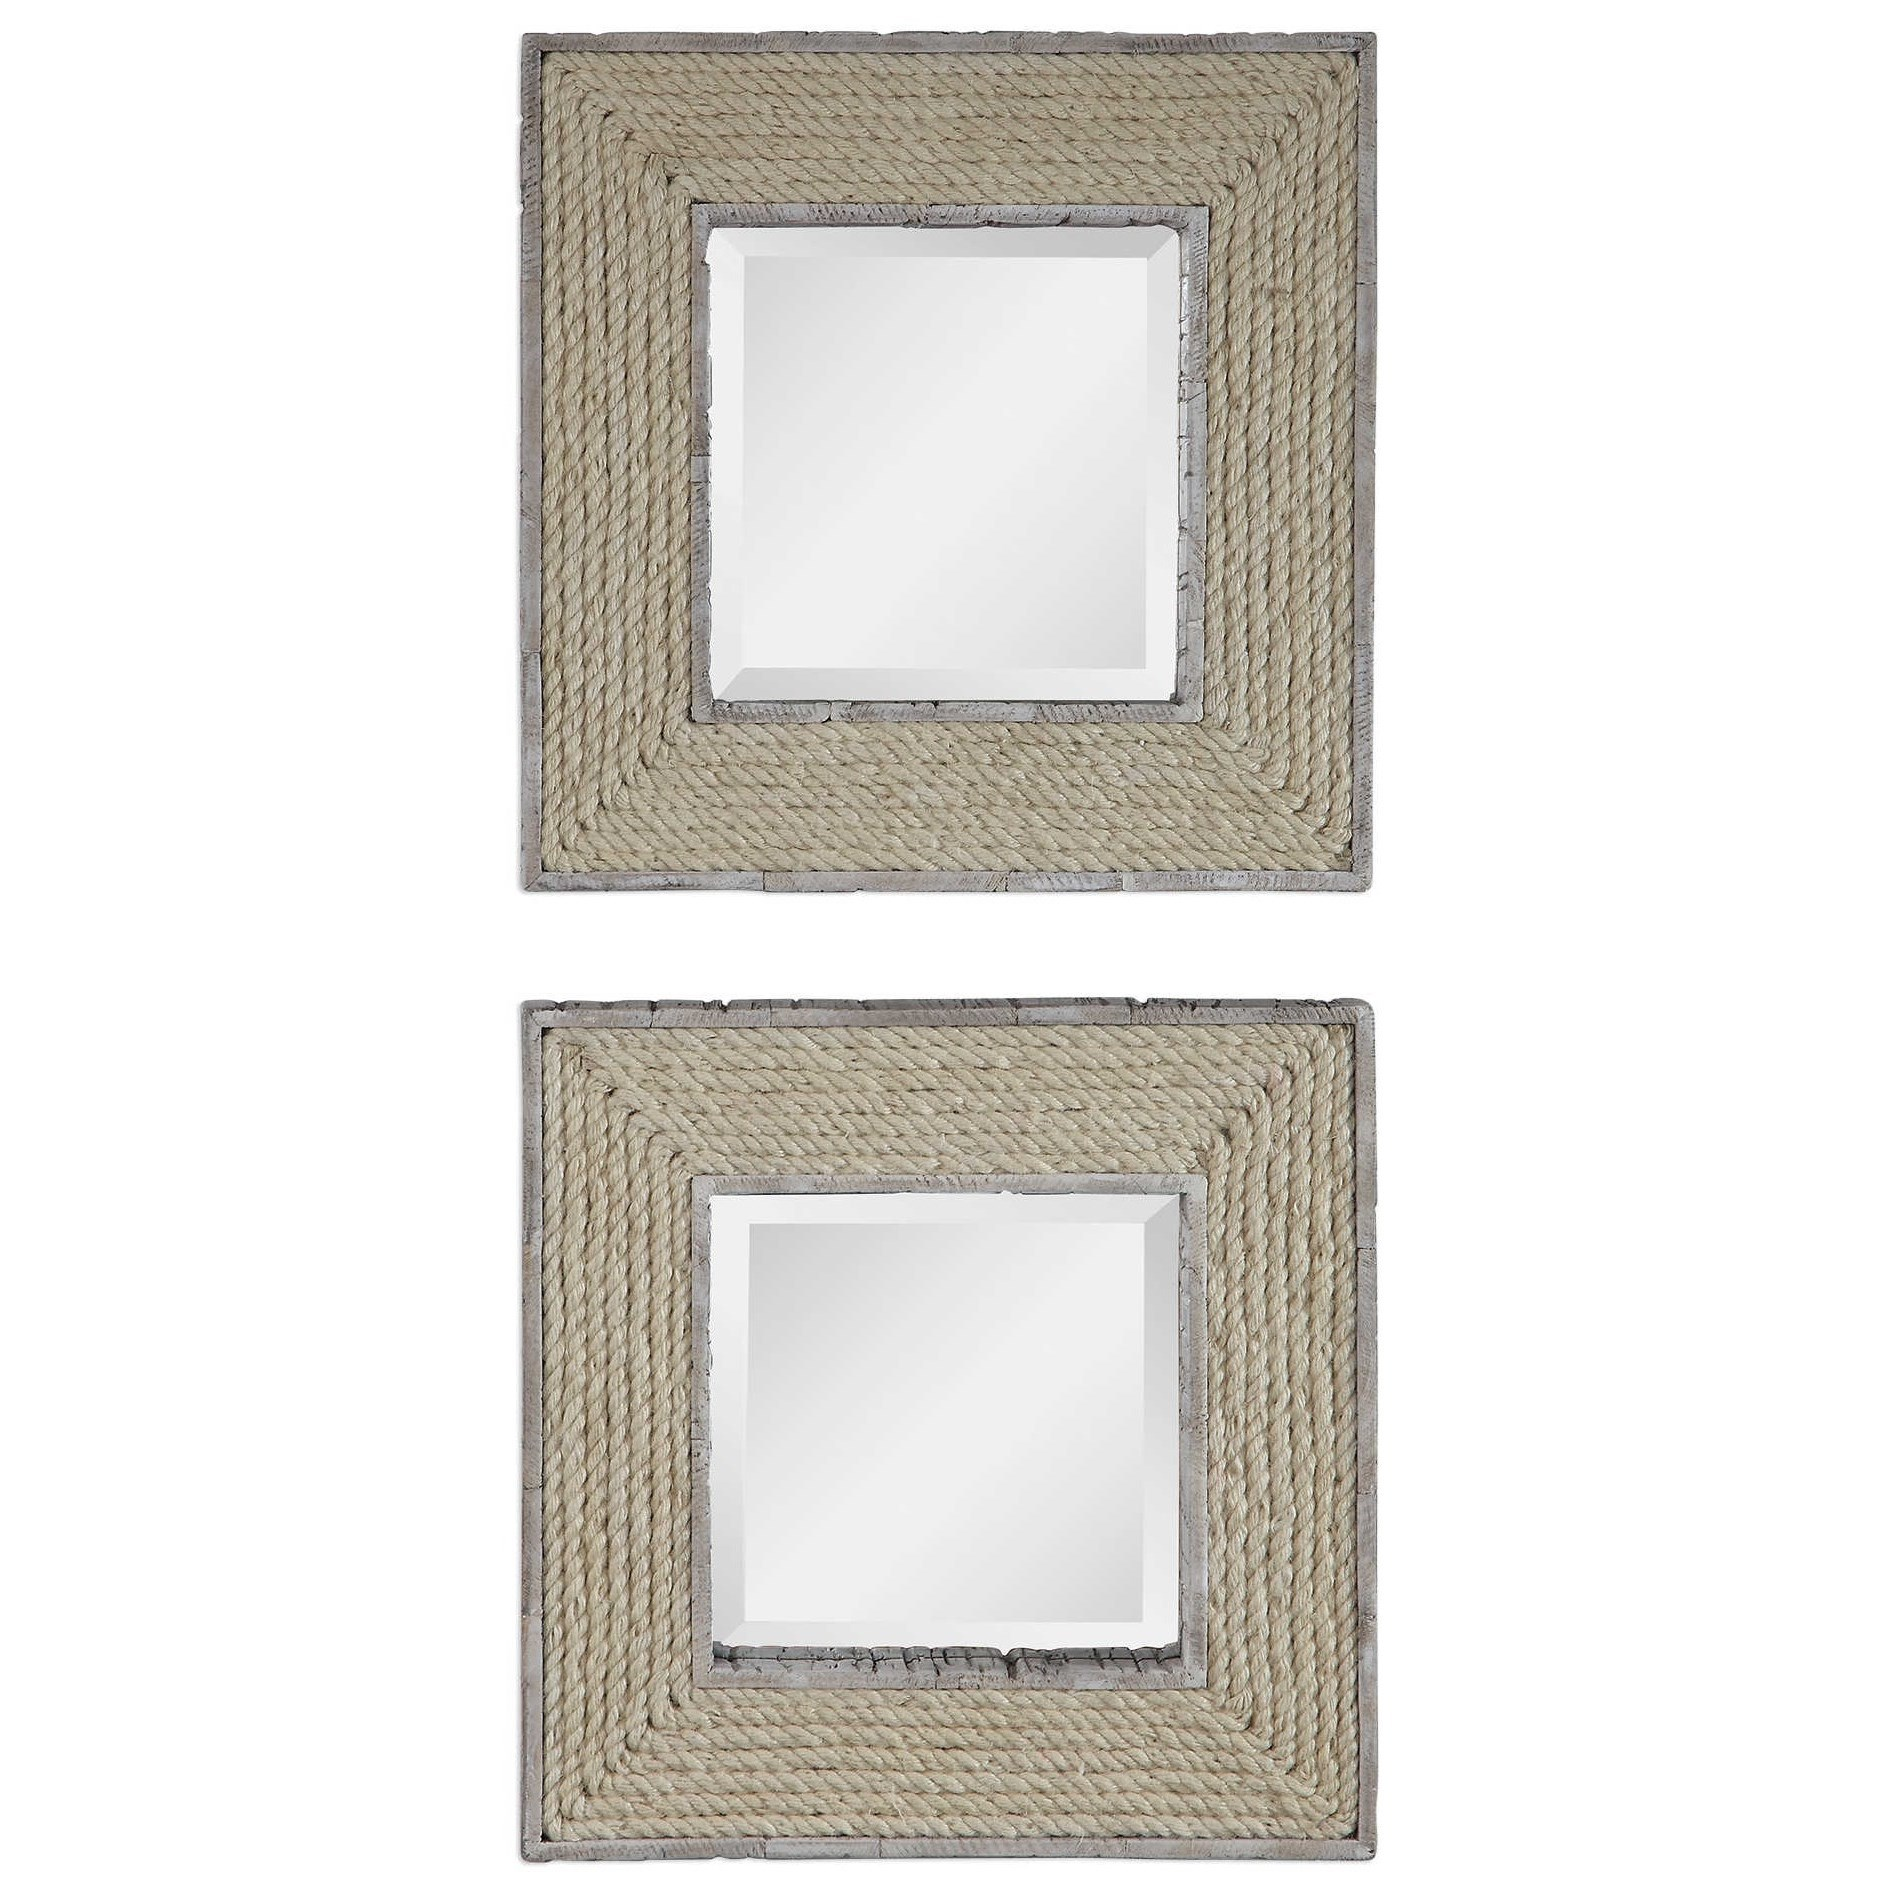 Mirrors Cambay Square Mirrors (Set of 2) by Uttermost at Wayside Furniture